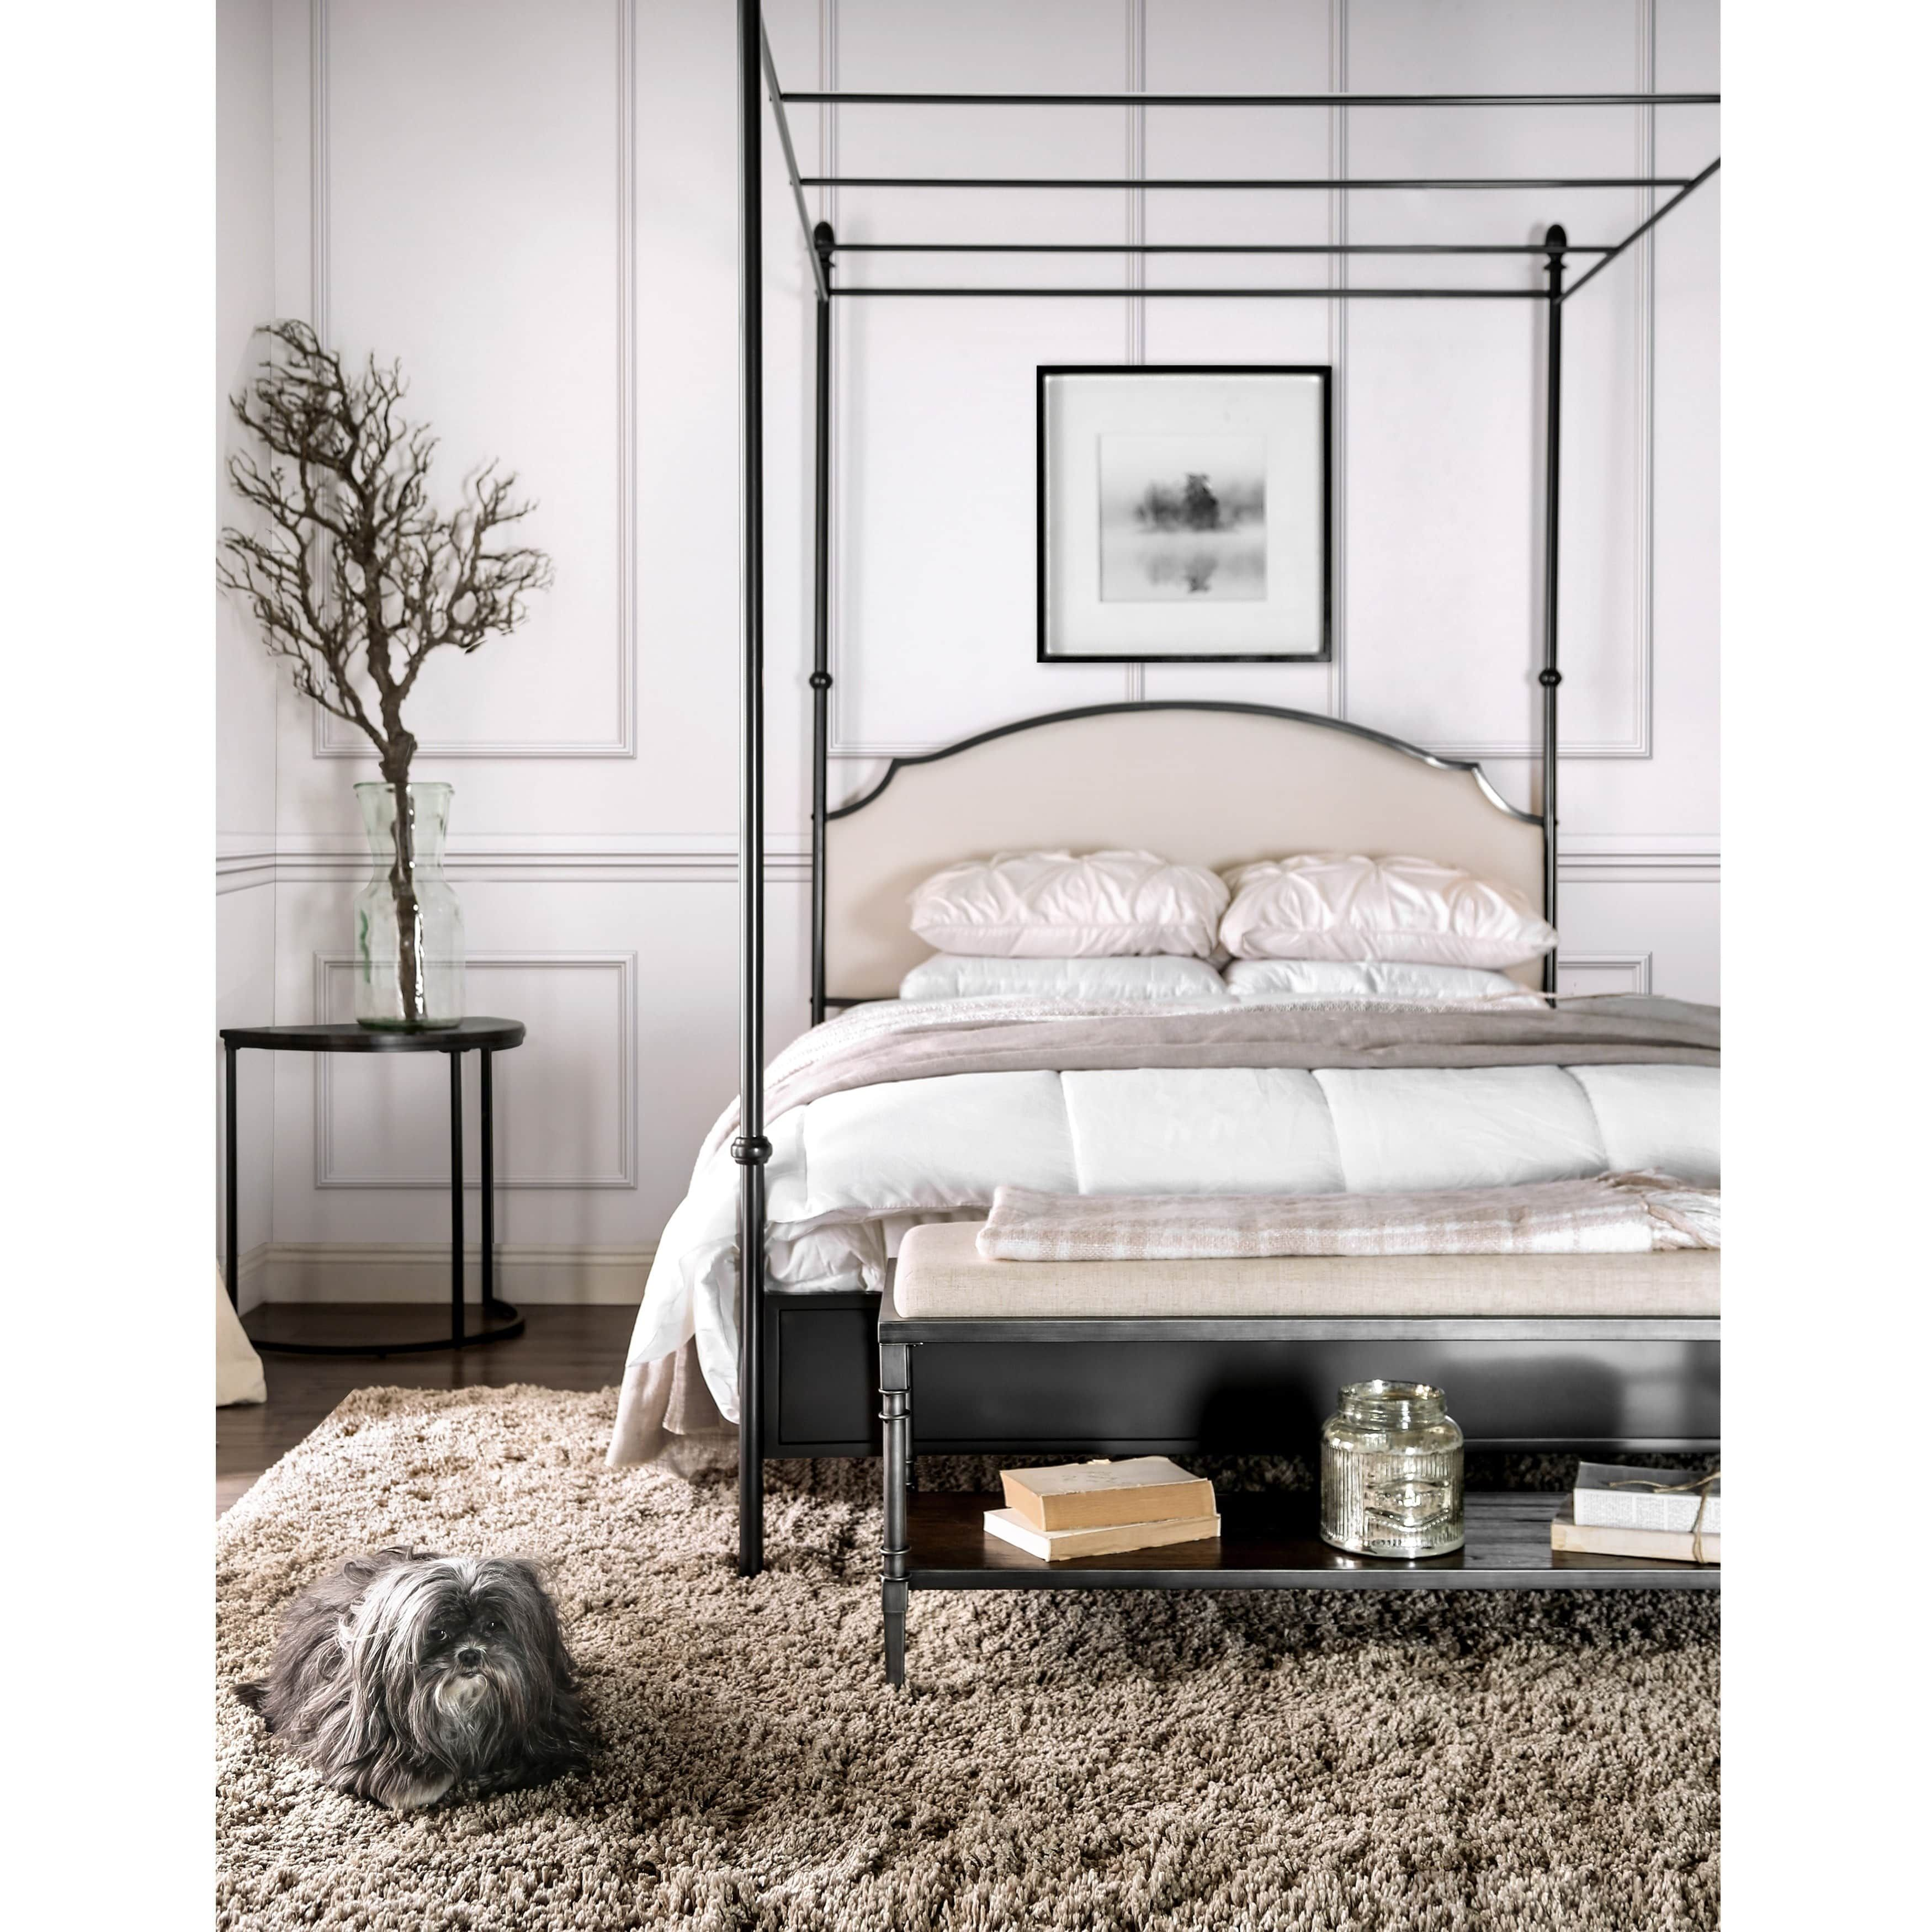 Furniture of America Karis Arched Upholstered Metal Canopy Bed | Overstock.com Shopping - The  sc 1 st  Pinterest & Furniture of America Karis Arched Upholstered Metal Canopy Bed ...